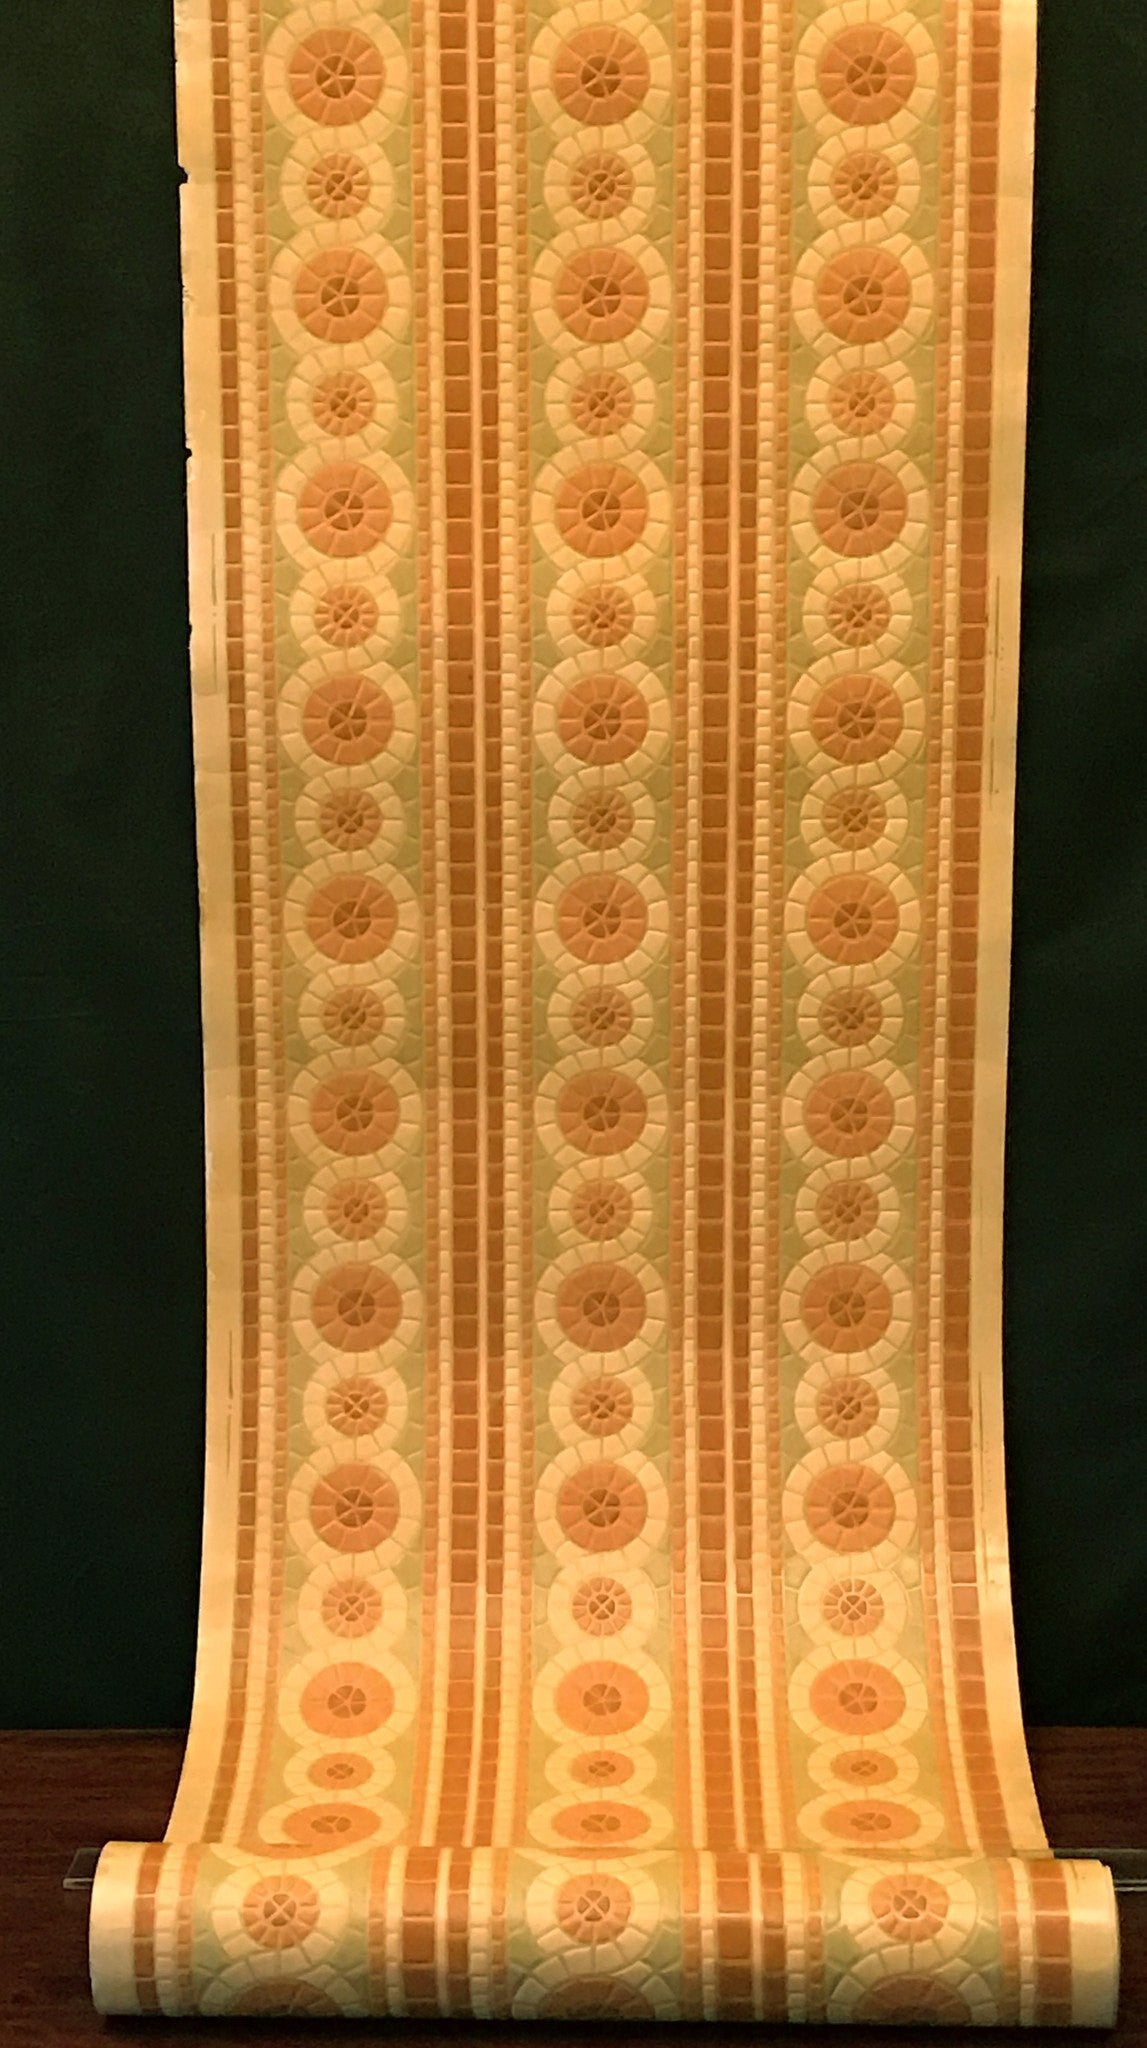 "3-Band 6-1/8"" Embossed Circles of Mosaic Tiles - Antique Wallpaper Roll"